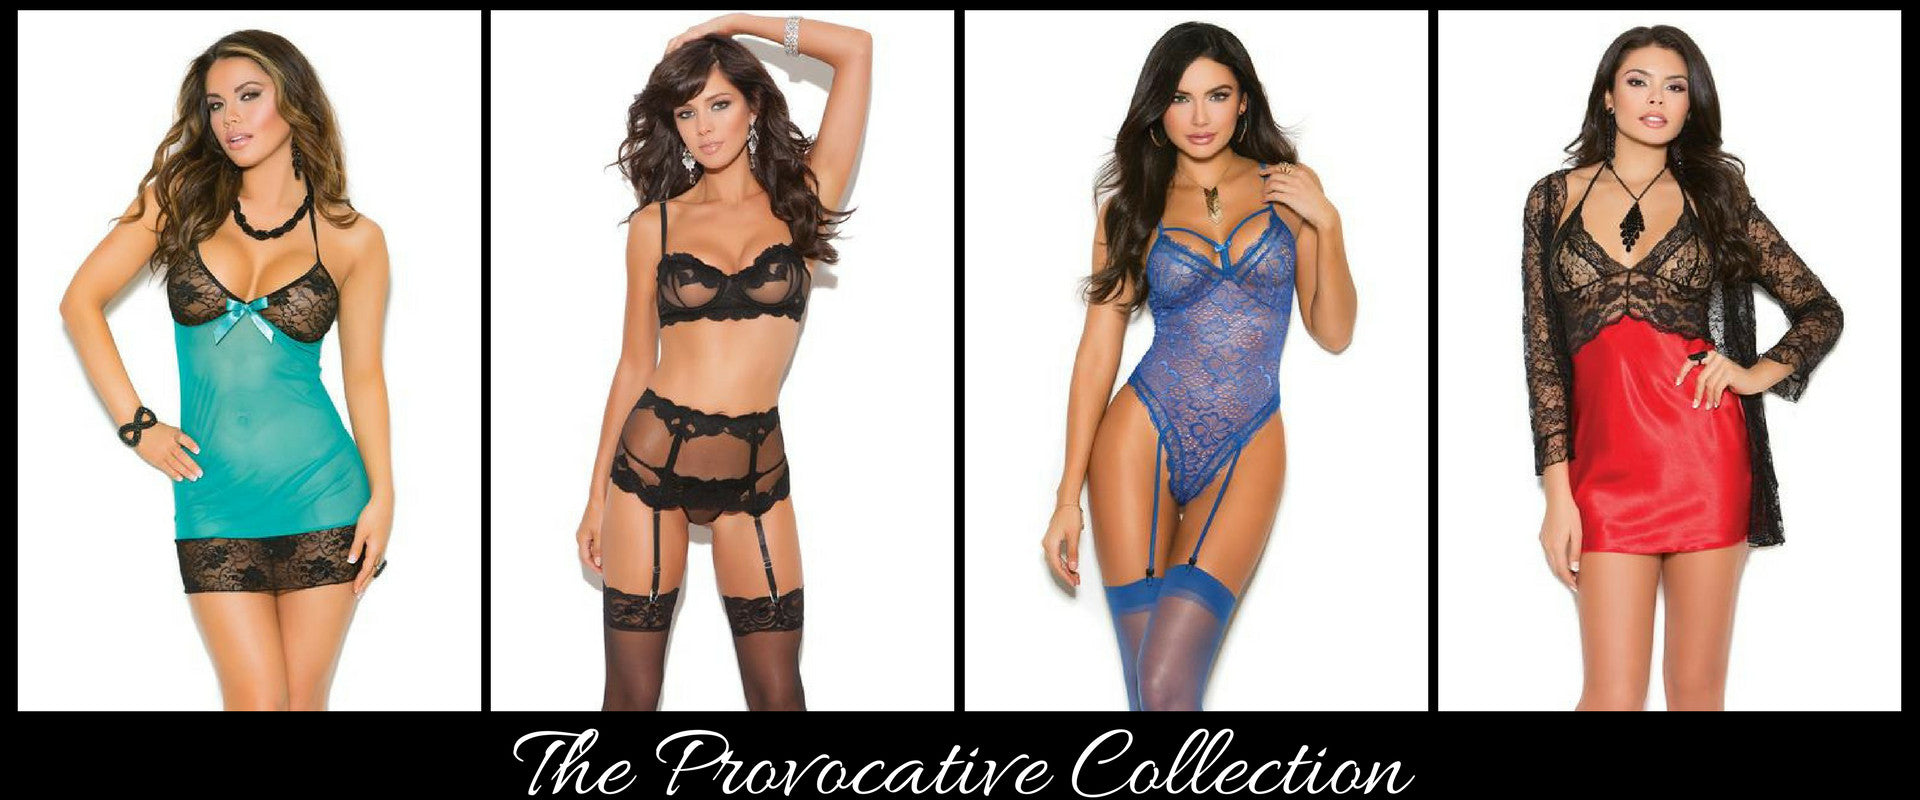 The Provocative Collection